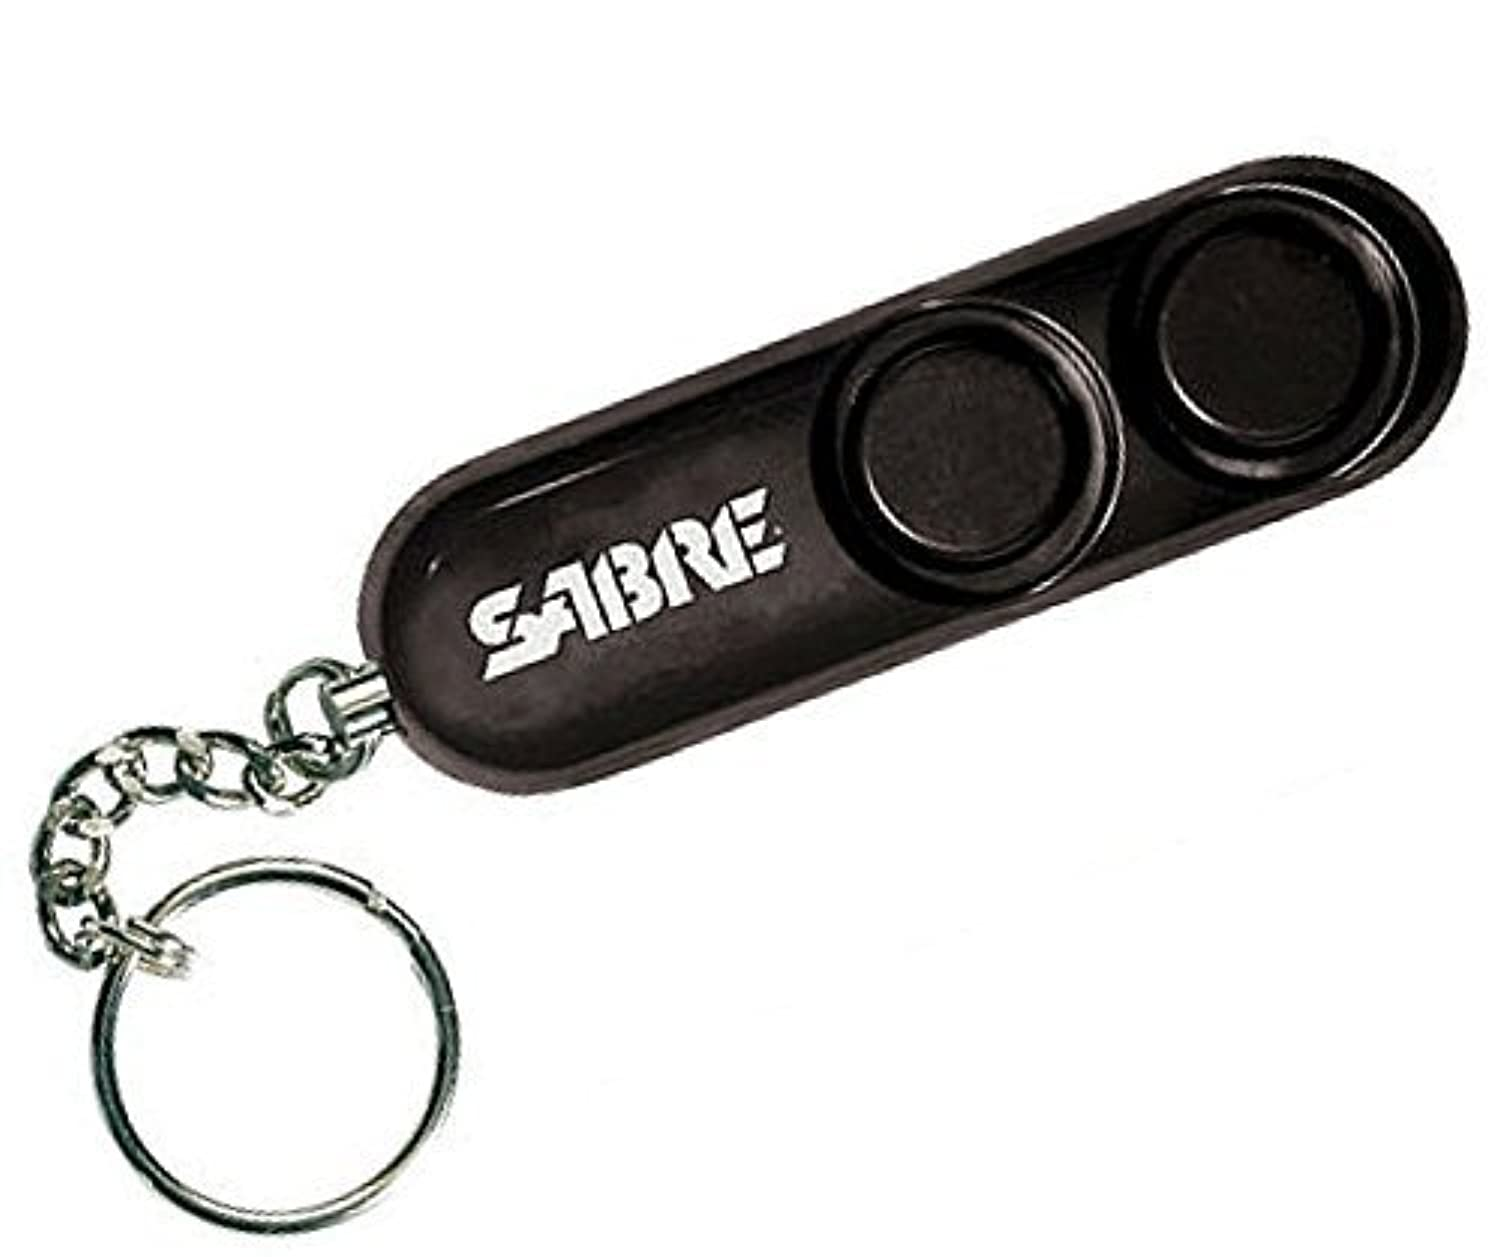 SABRE Personal Self-Defense Safety Alarm on Key Ring with LOUD Dual Alarm Siren Heard up to 600 ft/185 meters Away. To Use, Pull Metal Chain from Base [並行輸入品]